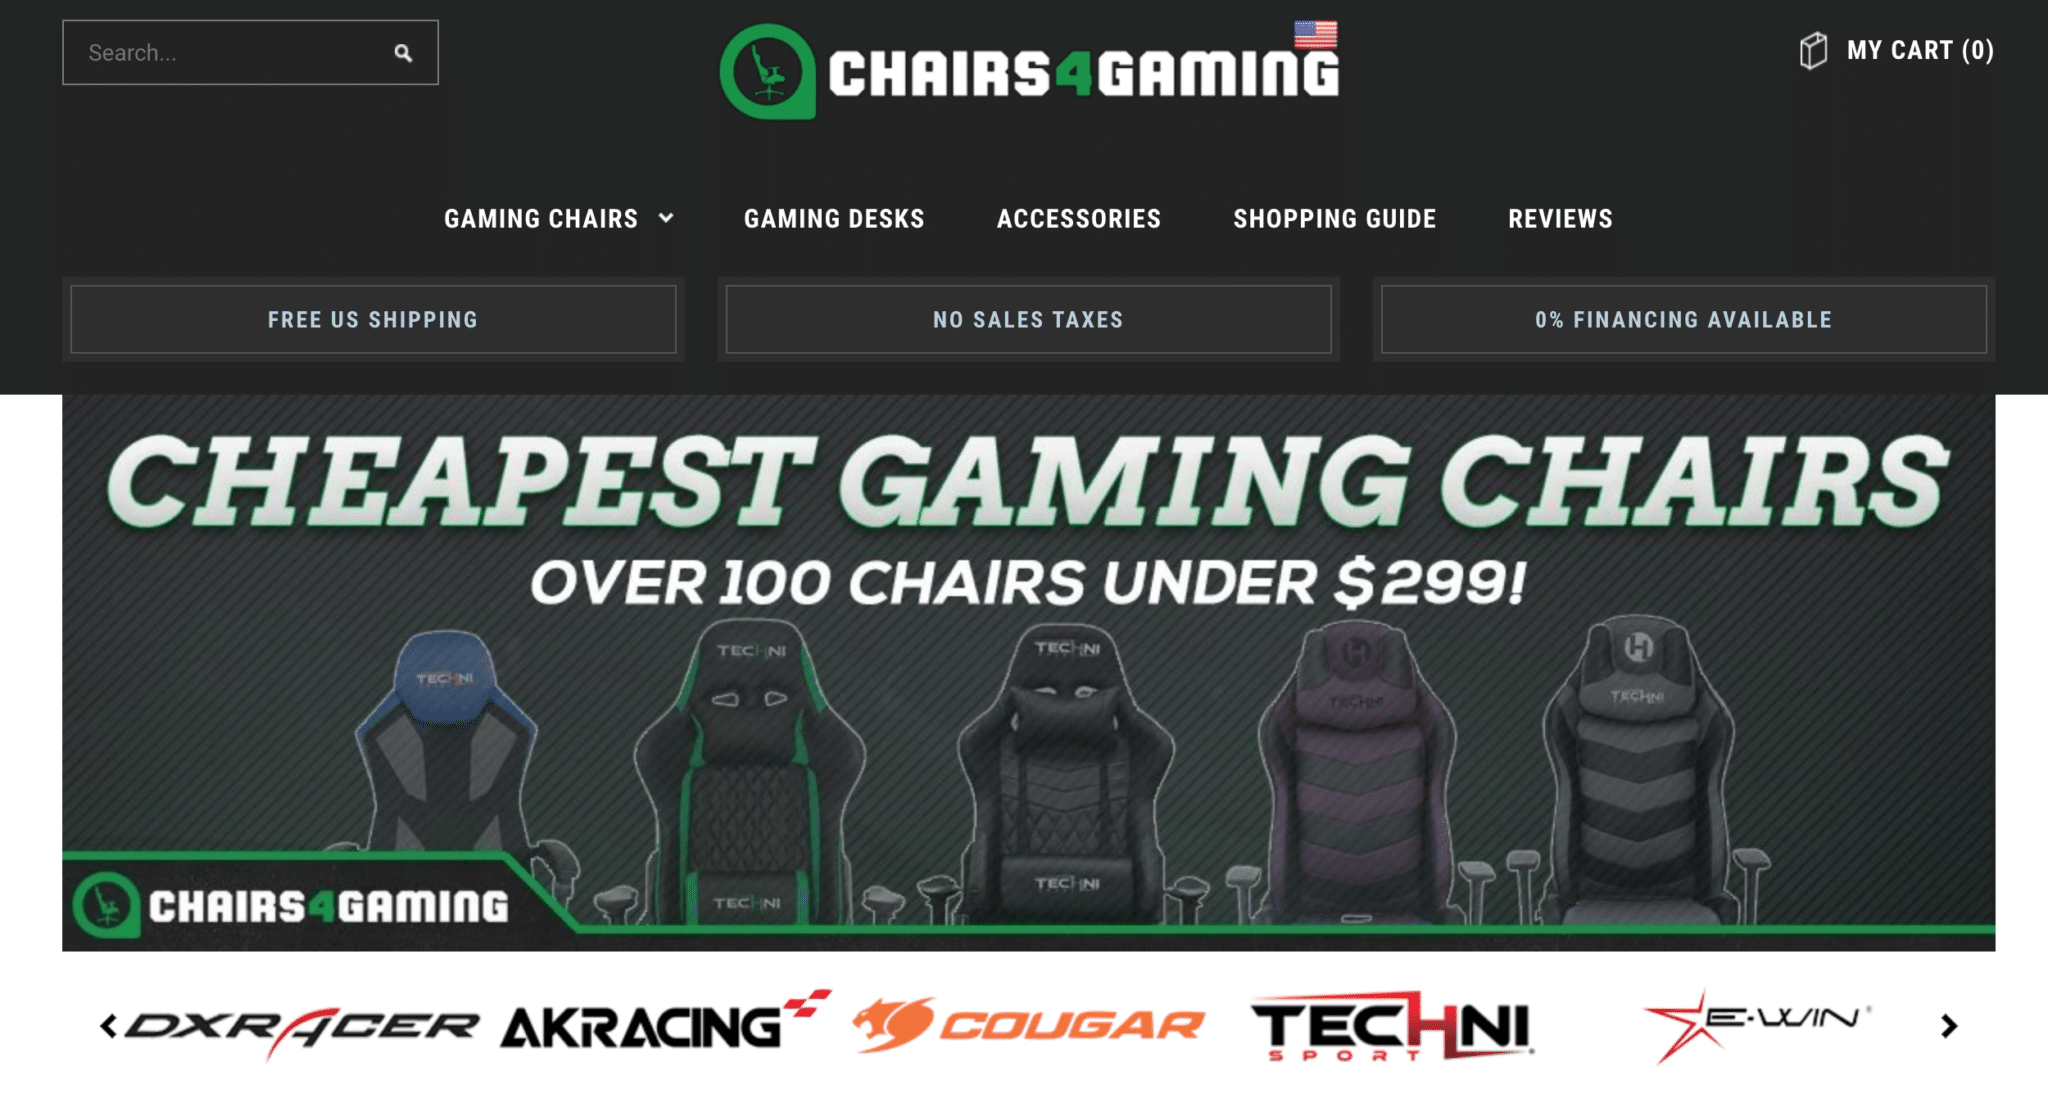 gaming affiliates chairs4gaming